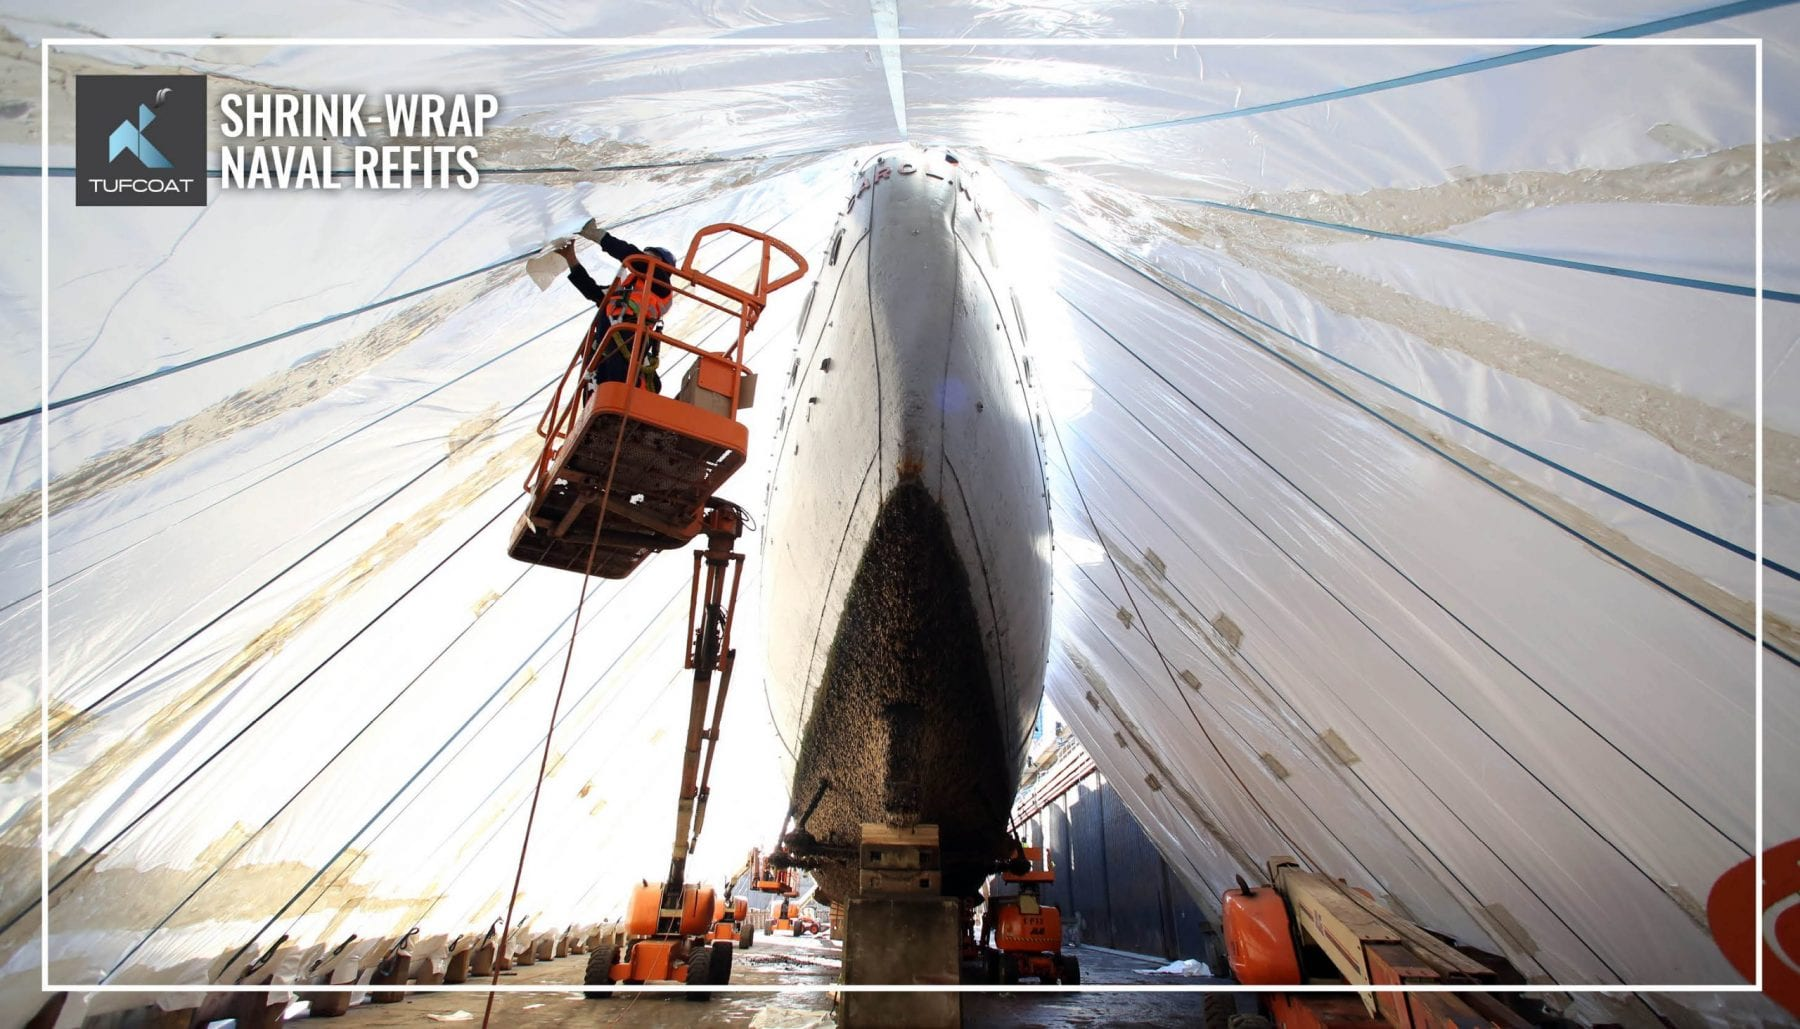 Tufcoat shrink-wrap naval refits HMS Caroline